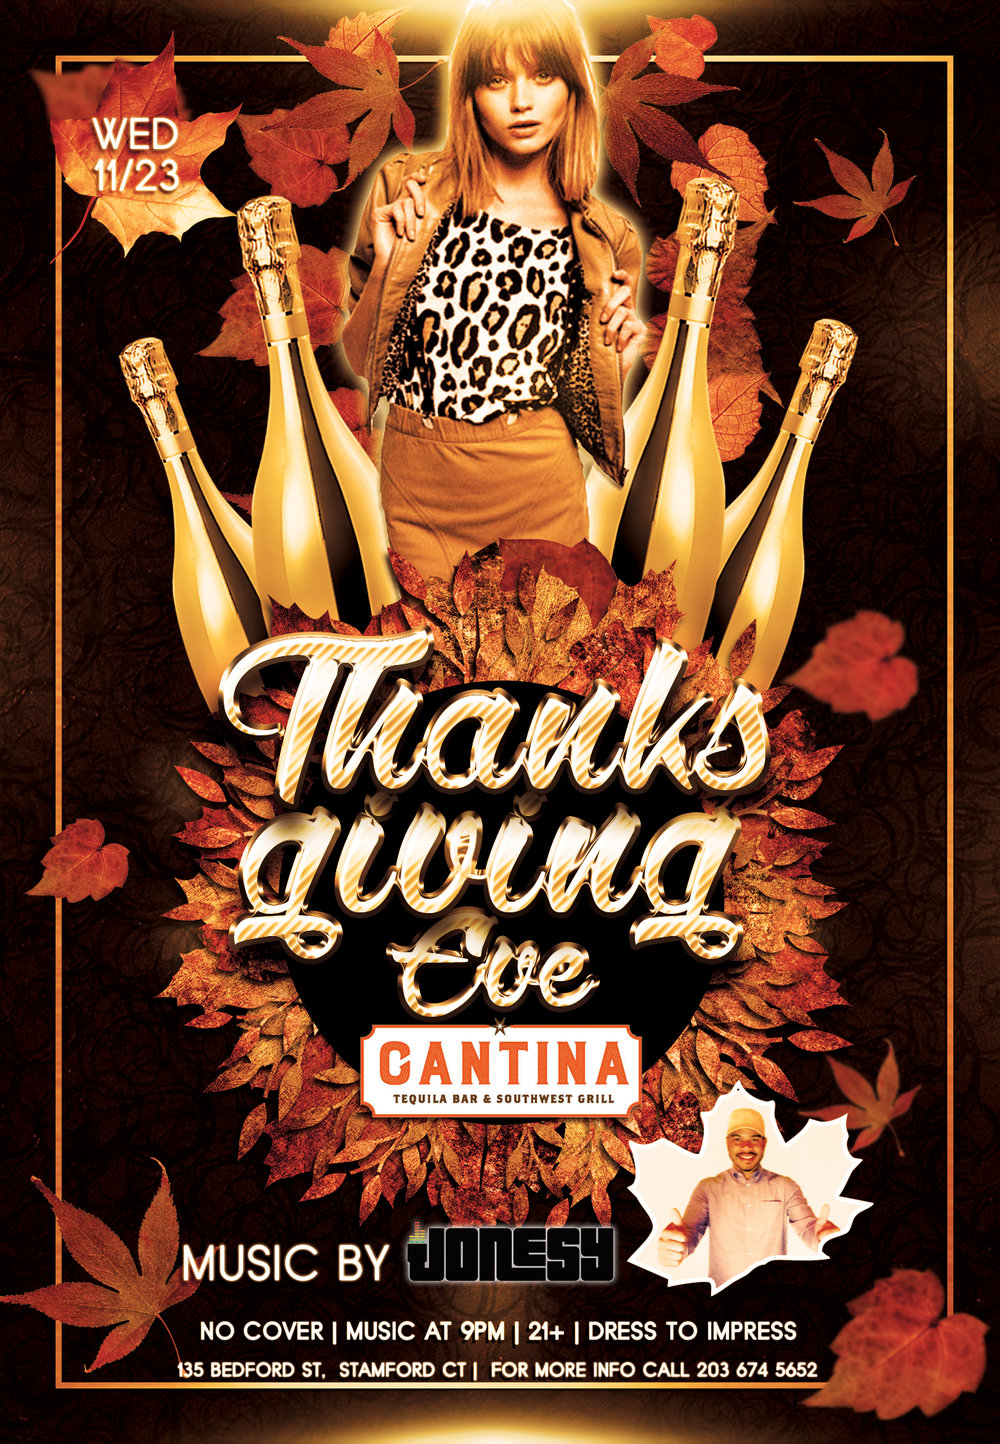 THANKSGIVING EVE JOIN US AT CANTINA TEQUILA BAR & SOUTHWEST GRILL IN STAMFORD, CT FOR MUSIC BY YOURS TRULY 9PM- CLOSE!  THIS WILL BE A FULL HOUSE SO BE SURE TO ARRIVE EARLY TO AVOID WAITING IN LINE!  DRESS TO IMPRESS, NO COVER CHARGE!  SEE EVERYONE THERE FOR STAMFORD'S HOMECOMING & THE BEST MUSIC IN TOWN!